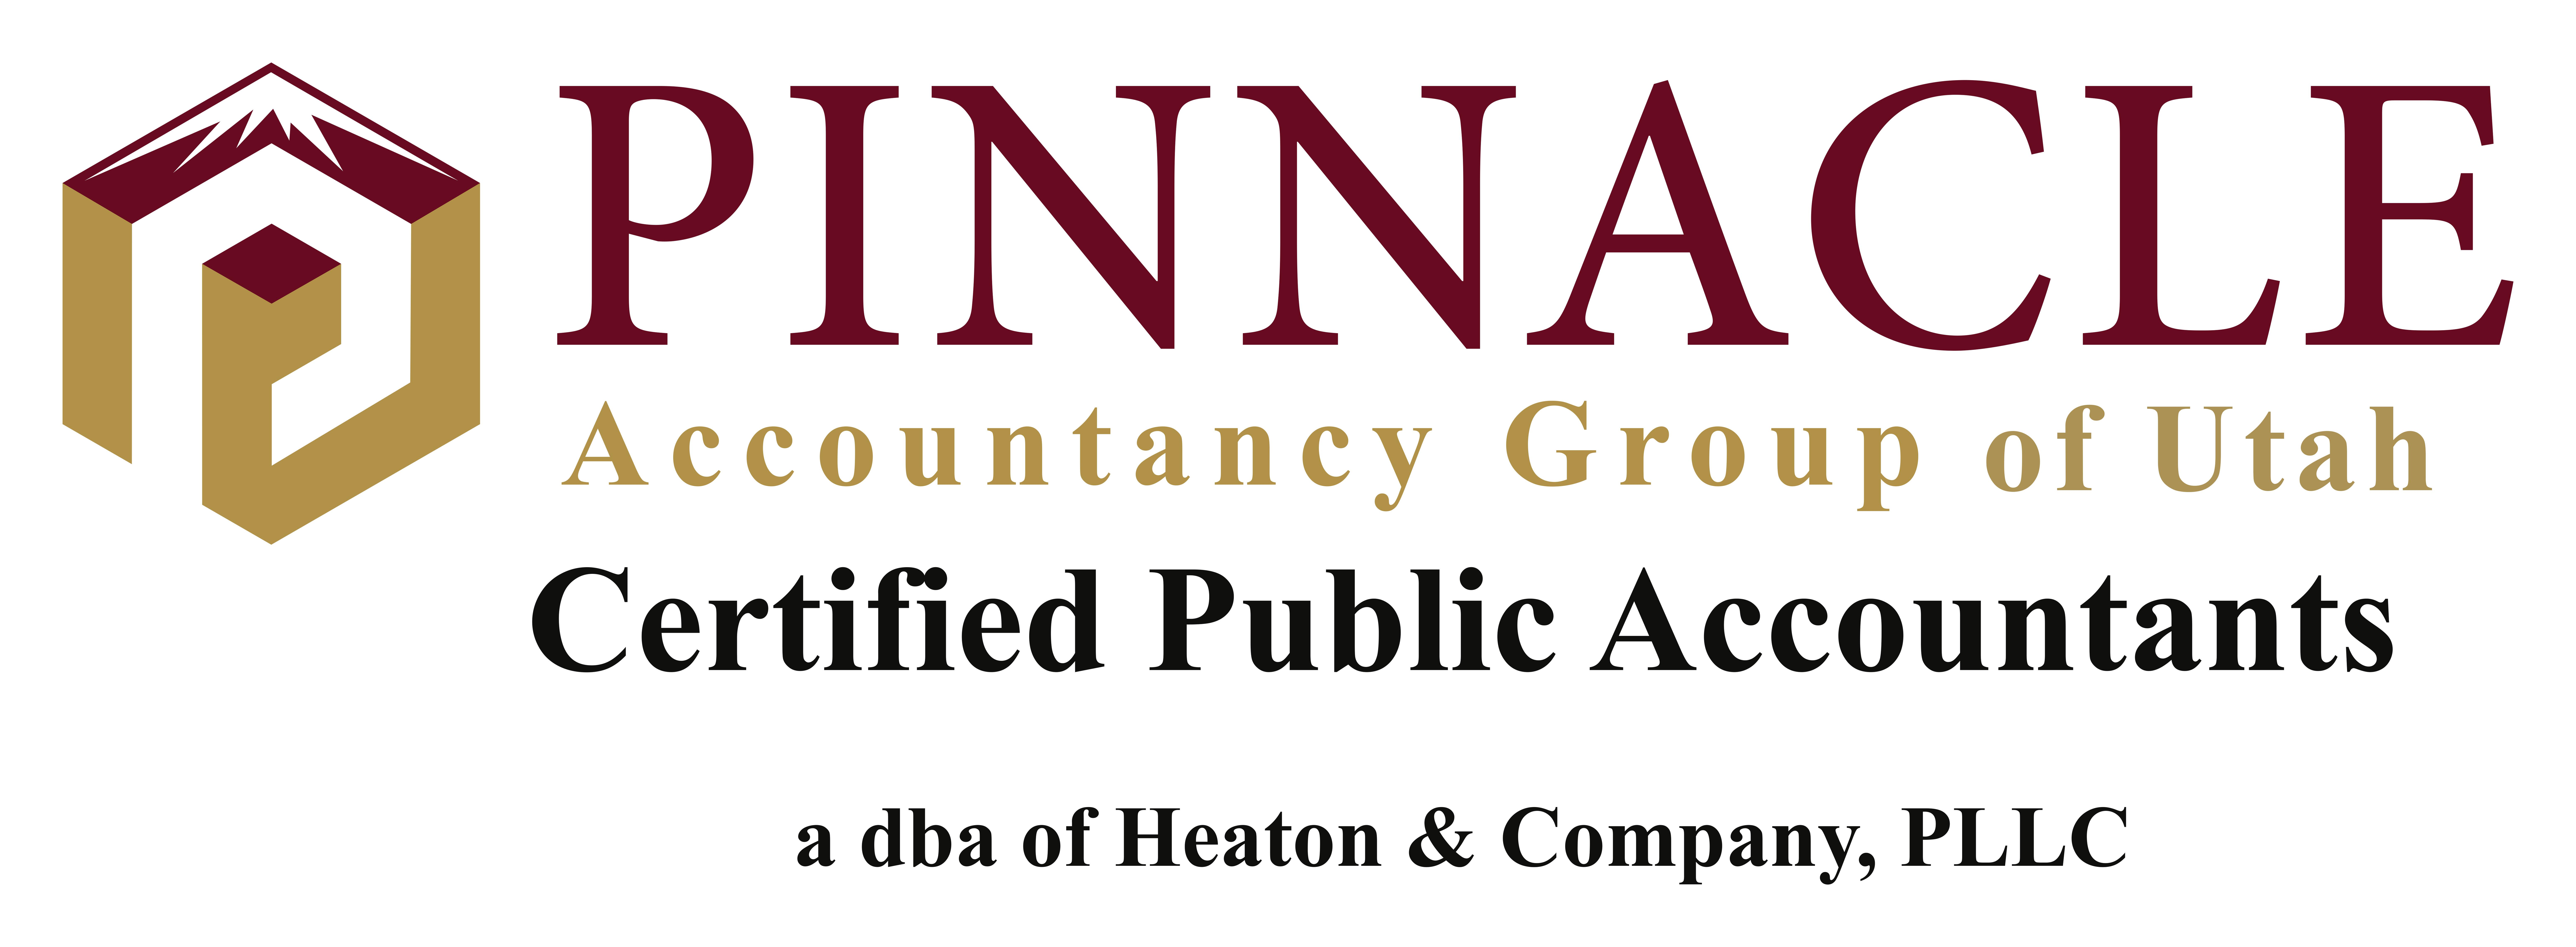 Pinnacle Accountancy Group of Utah